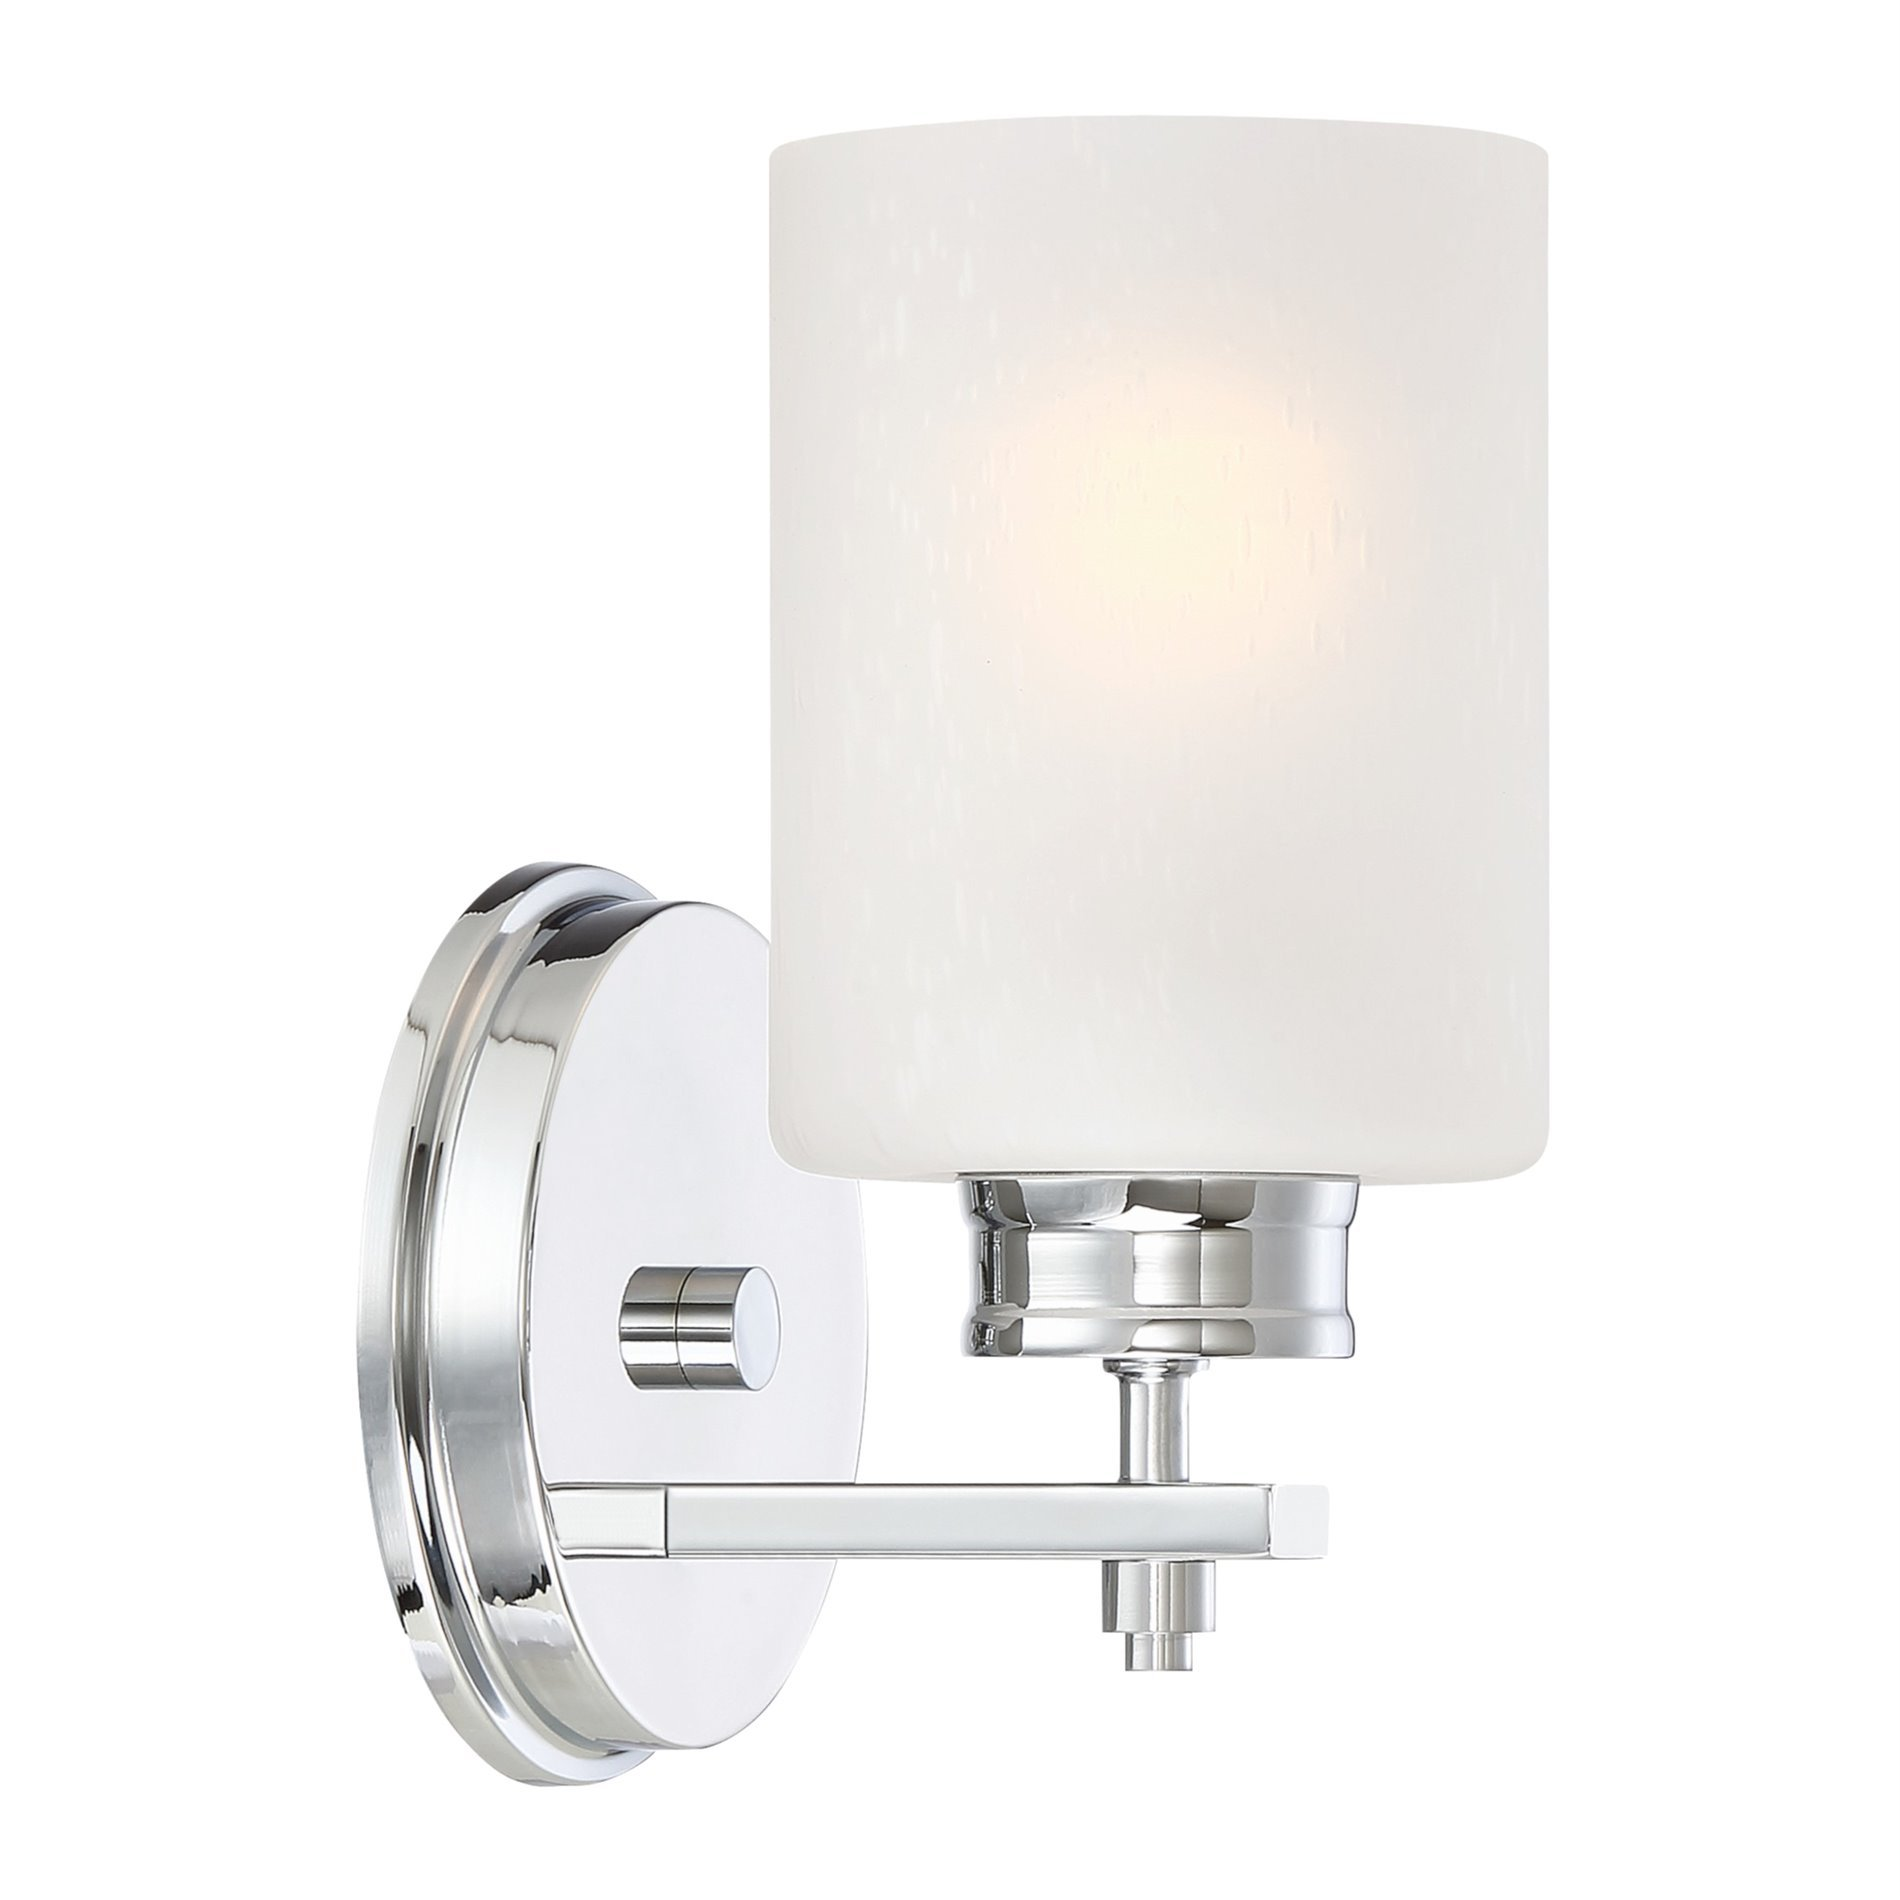 Kira Home Phoebe 8'' Wall Sconce/Wall Light + Frosted Bubble Glass Shade, Chrome Finish by Kira Home